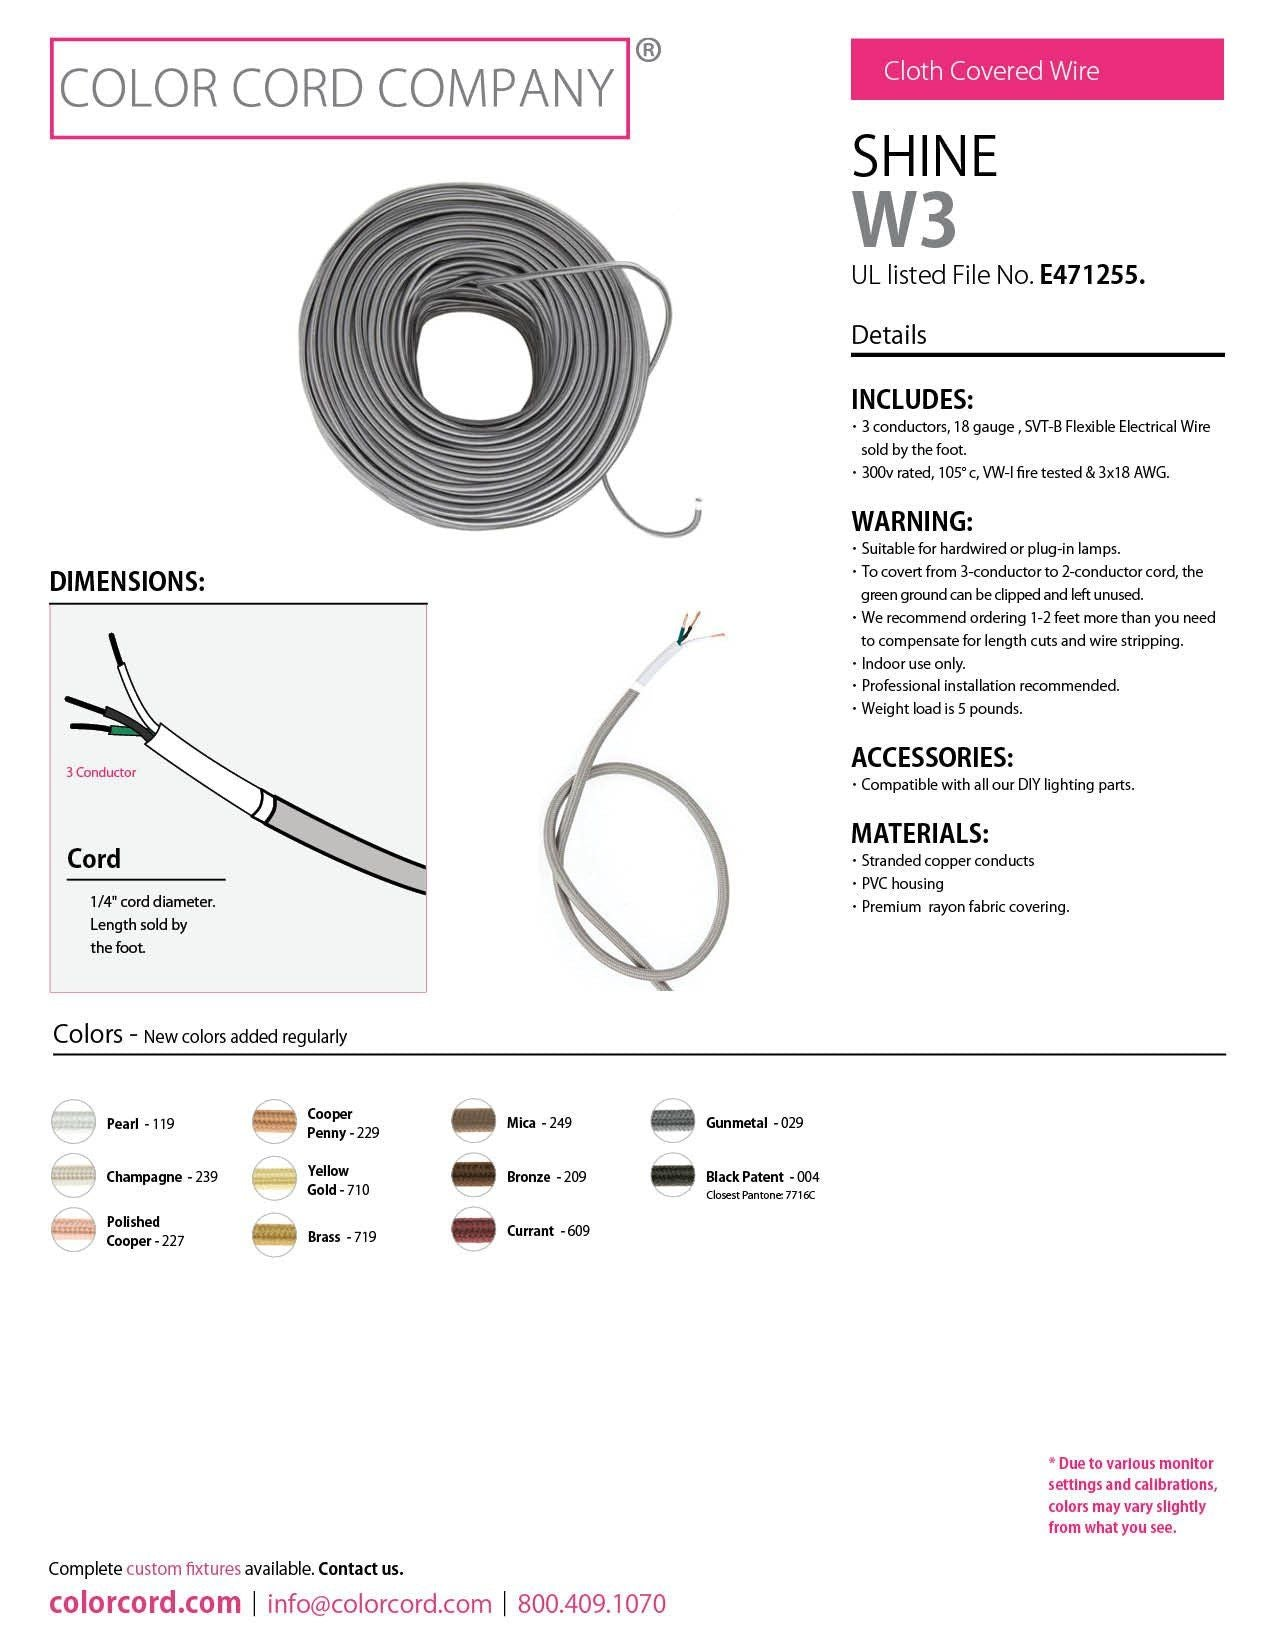 Cloth Covered Electrical Wire Yellow Gold Color Cord Company Wiring Light Pendant Diagram Diy Fabric By The Foot